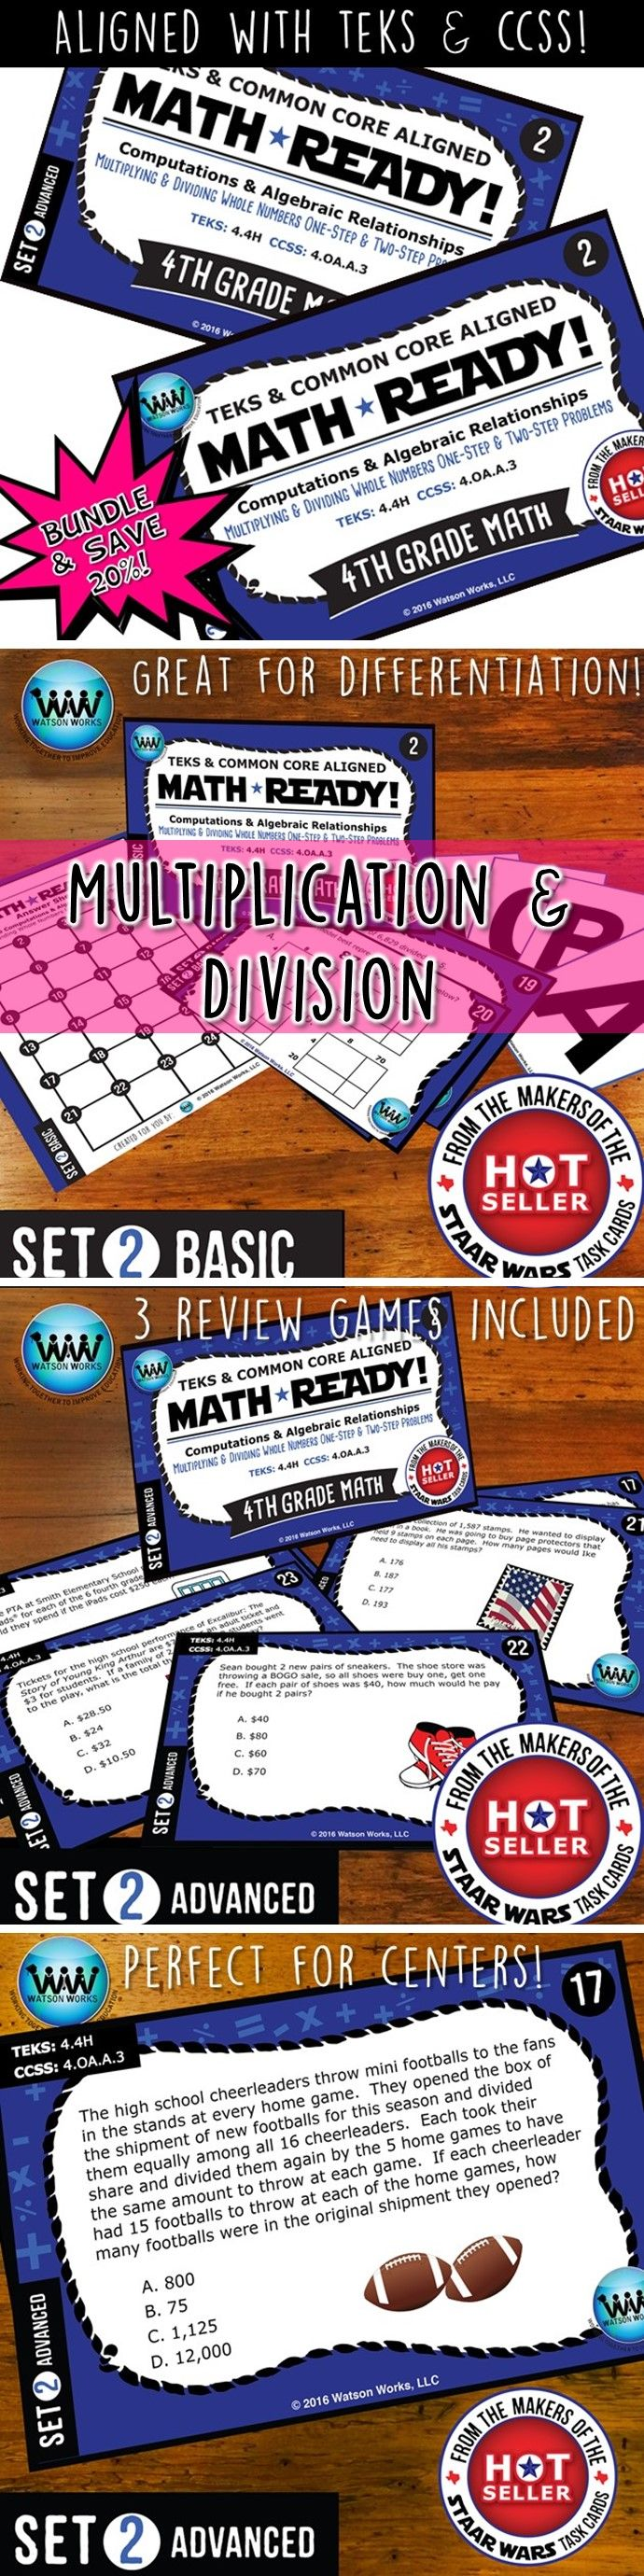 SAVE 20% WHEN YOU PURCHASE THIS BUNDLE (includes both our Basic & Advanced MATH READY Multiplying & Dividing Whole Numbers Task Cards sets)! Both sets include 24 task cards w/ multiple choice answers. The BASIC set helps your students practice & apply their understanding of multiplication/division at a simpler, basic level with shorter questions, while the ADVANCED set features rigorous, higher-level thinking questions w/ longer word problems, making them great for differentiation. $4.78